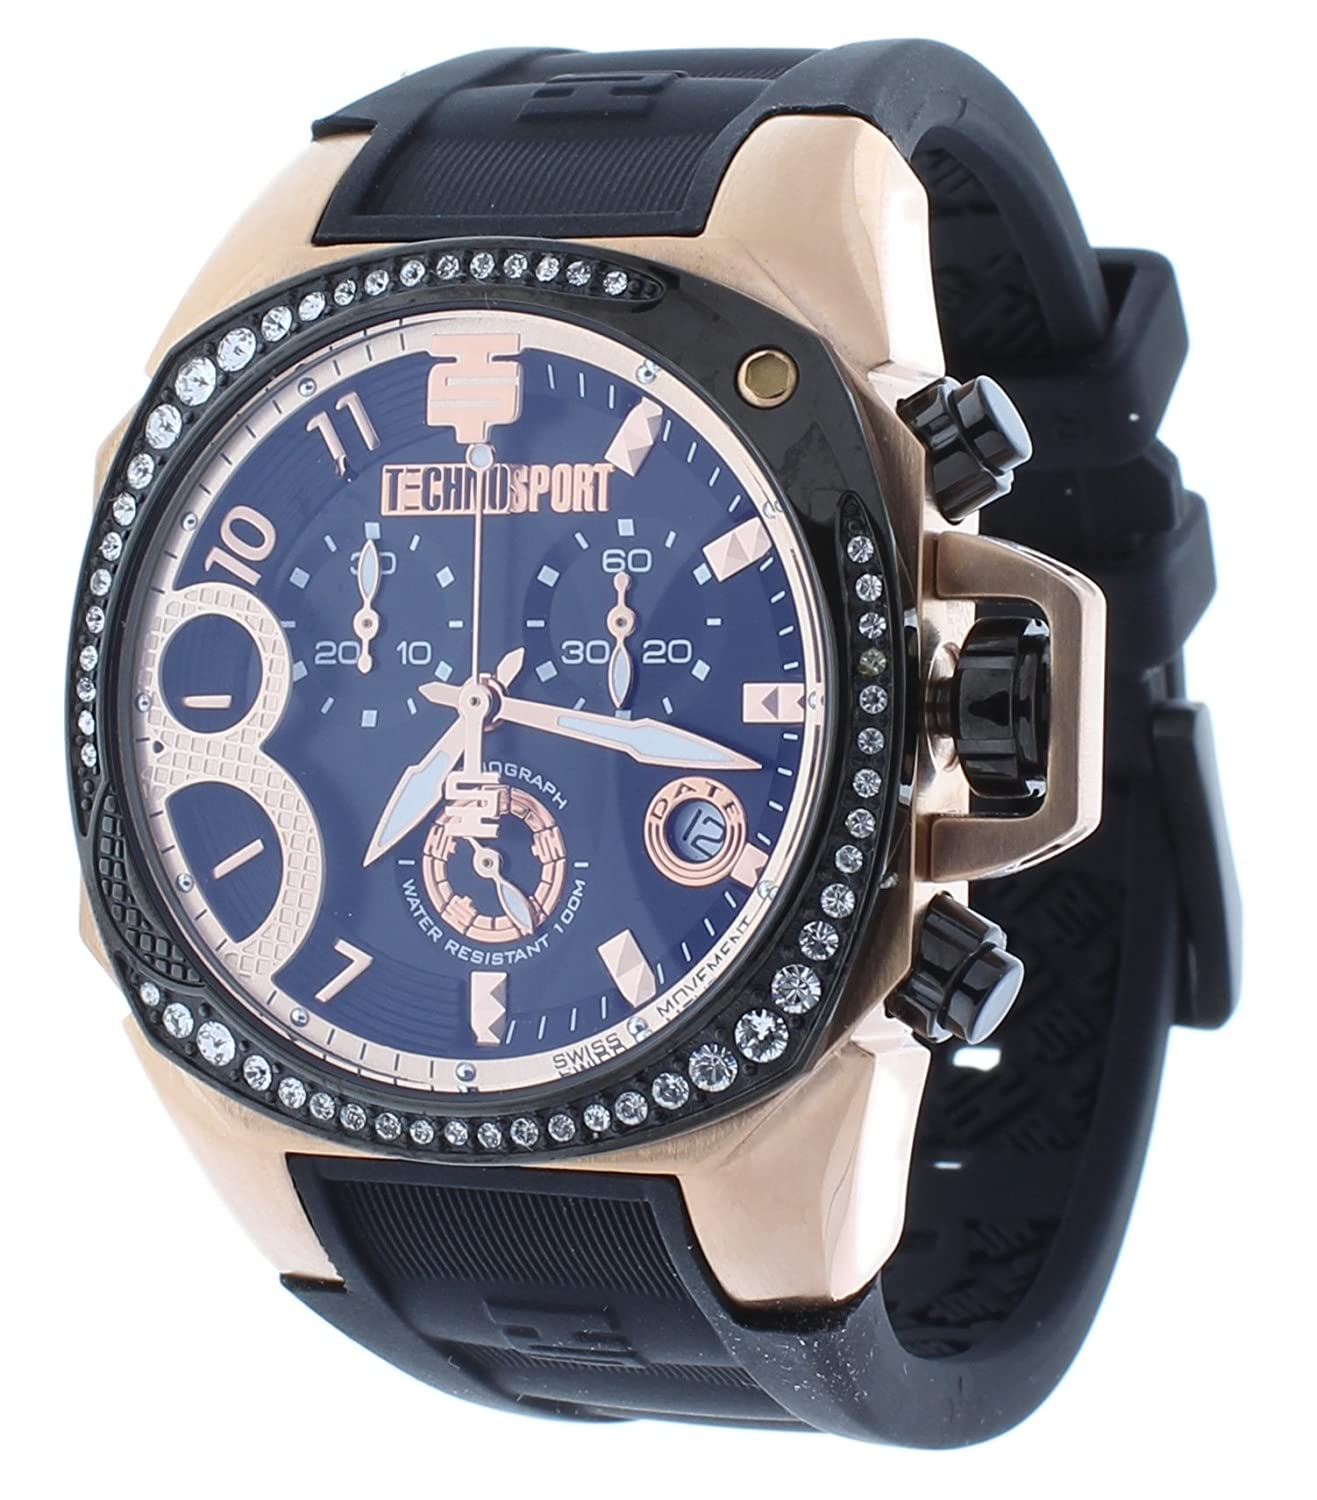 TechnoSport Damen Chrono Uhr - RADIANCE rose gold - schwarz